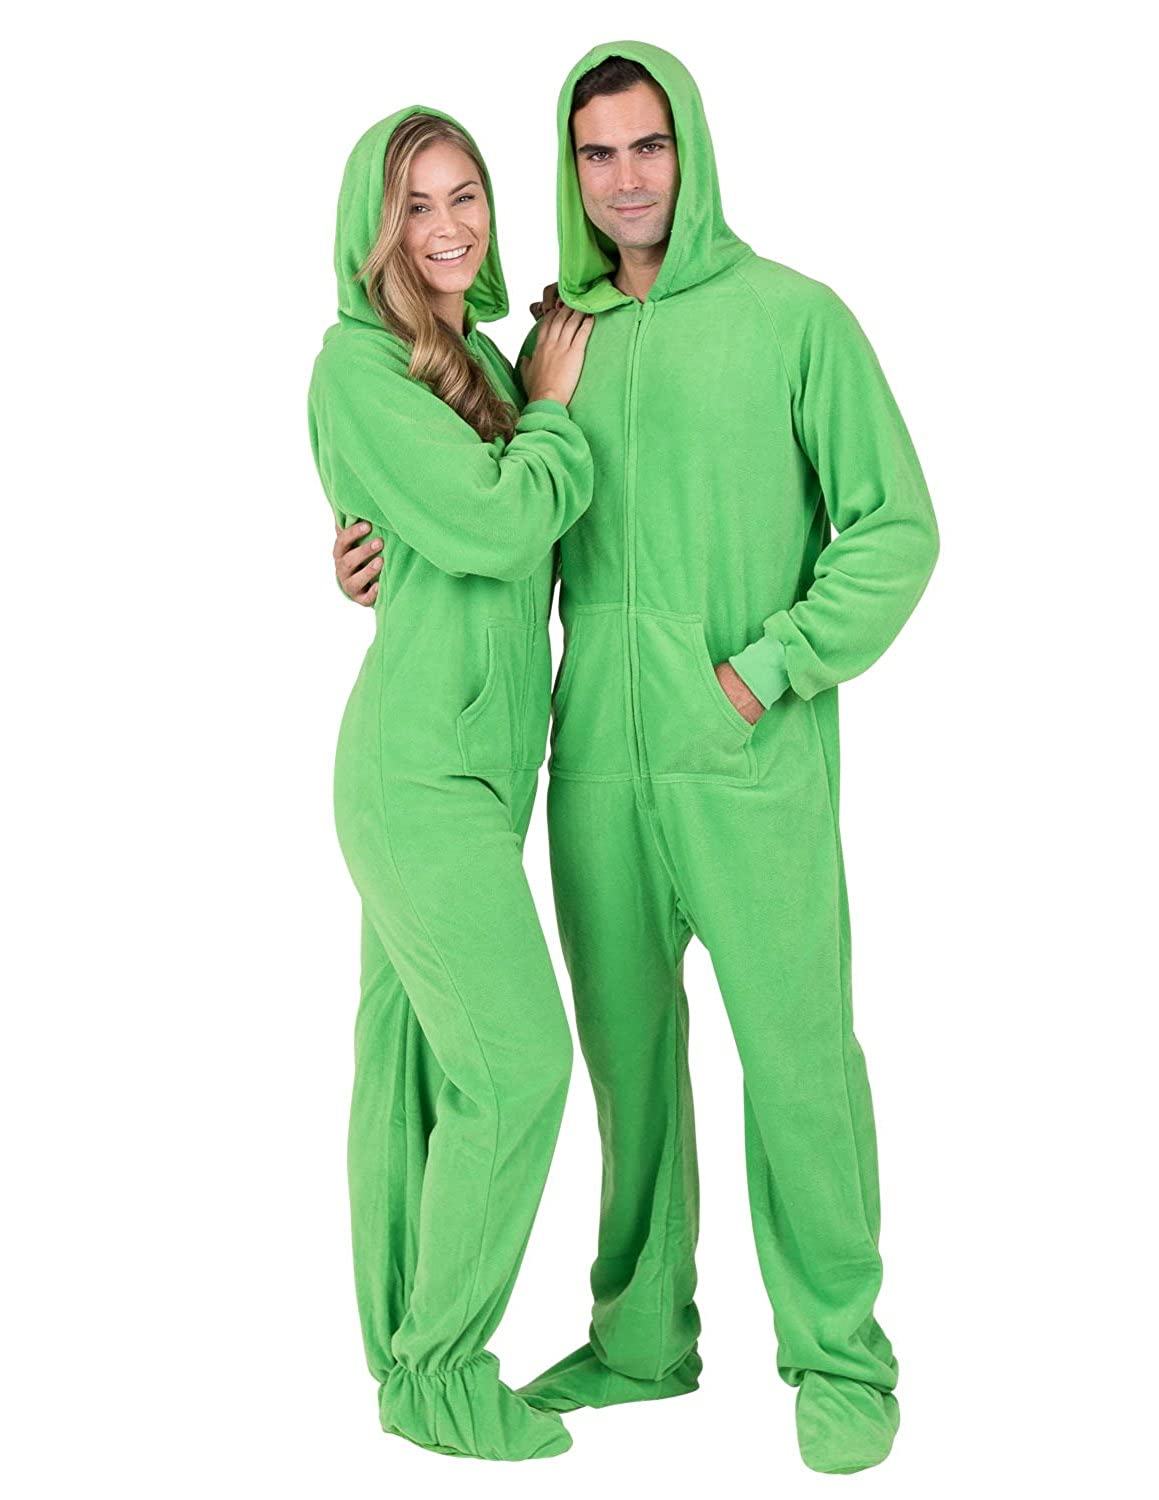 c189ef3788af Amazon.com  Footed Pajamas - Emerald Green Adult Hoodie Fleece ...